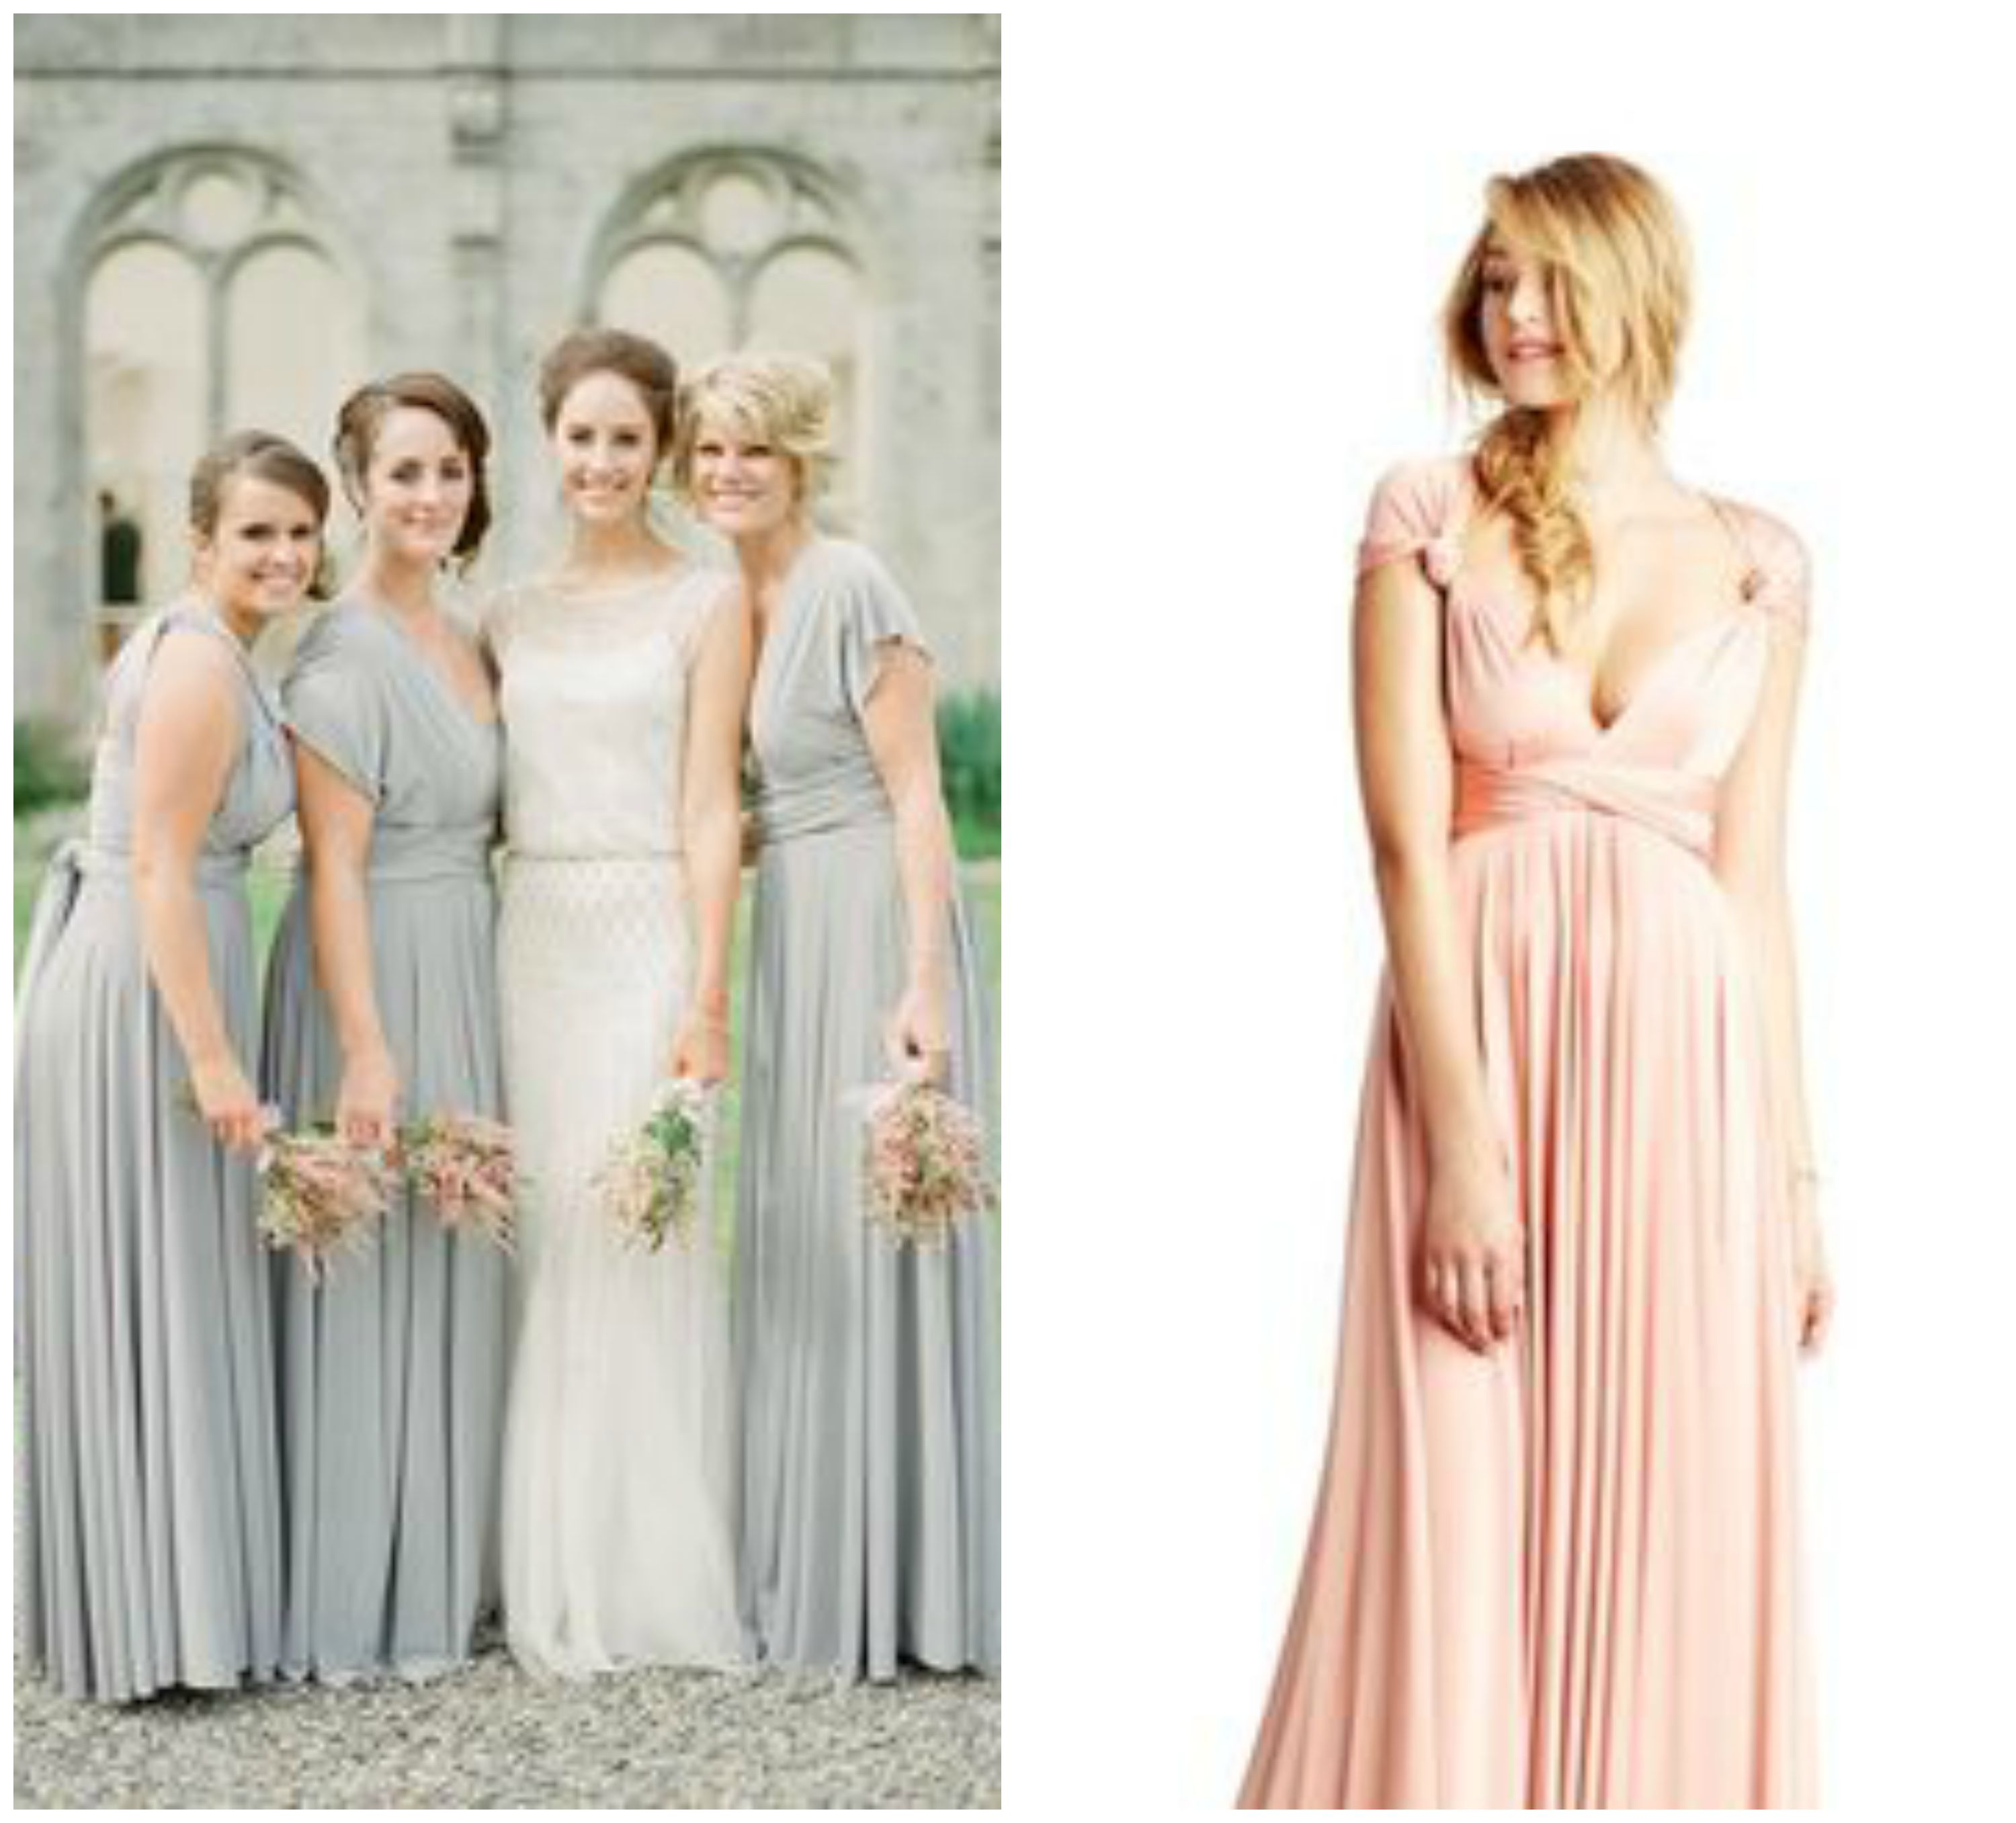 Two birds bridesmaids the utter blog two birds dress early bridesmaid ideas ombrellifo Image collections